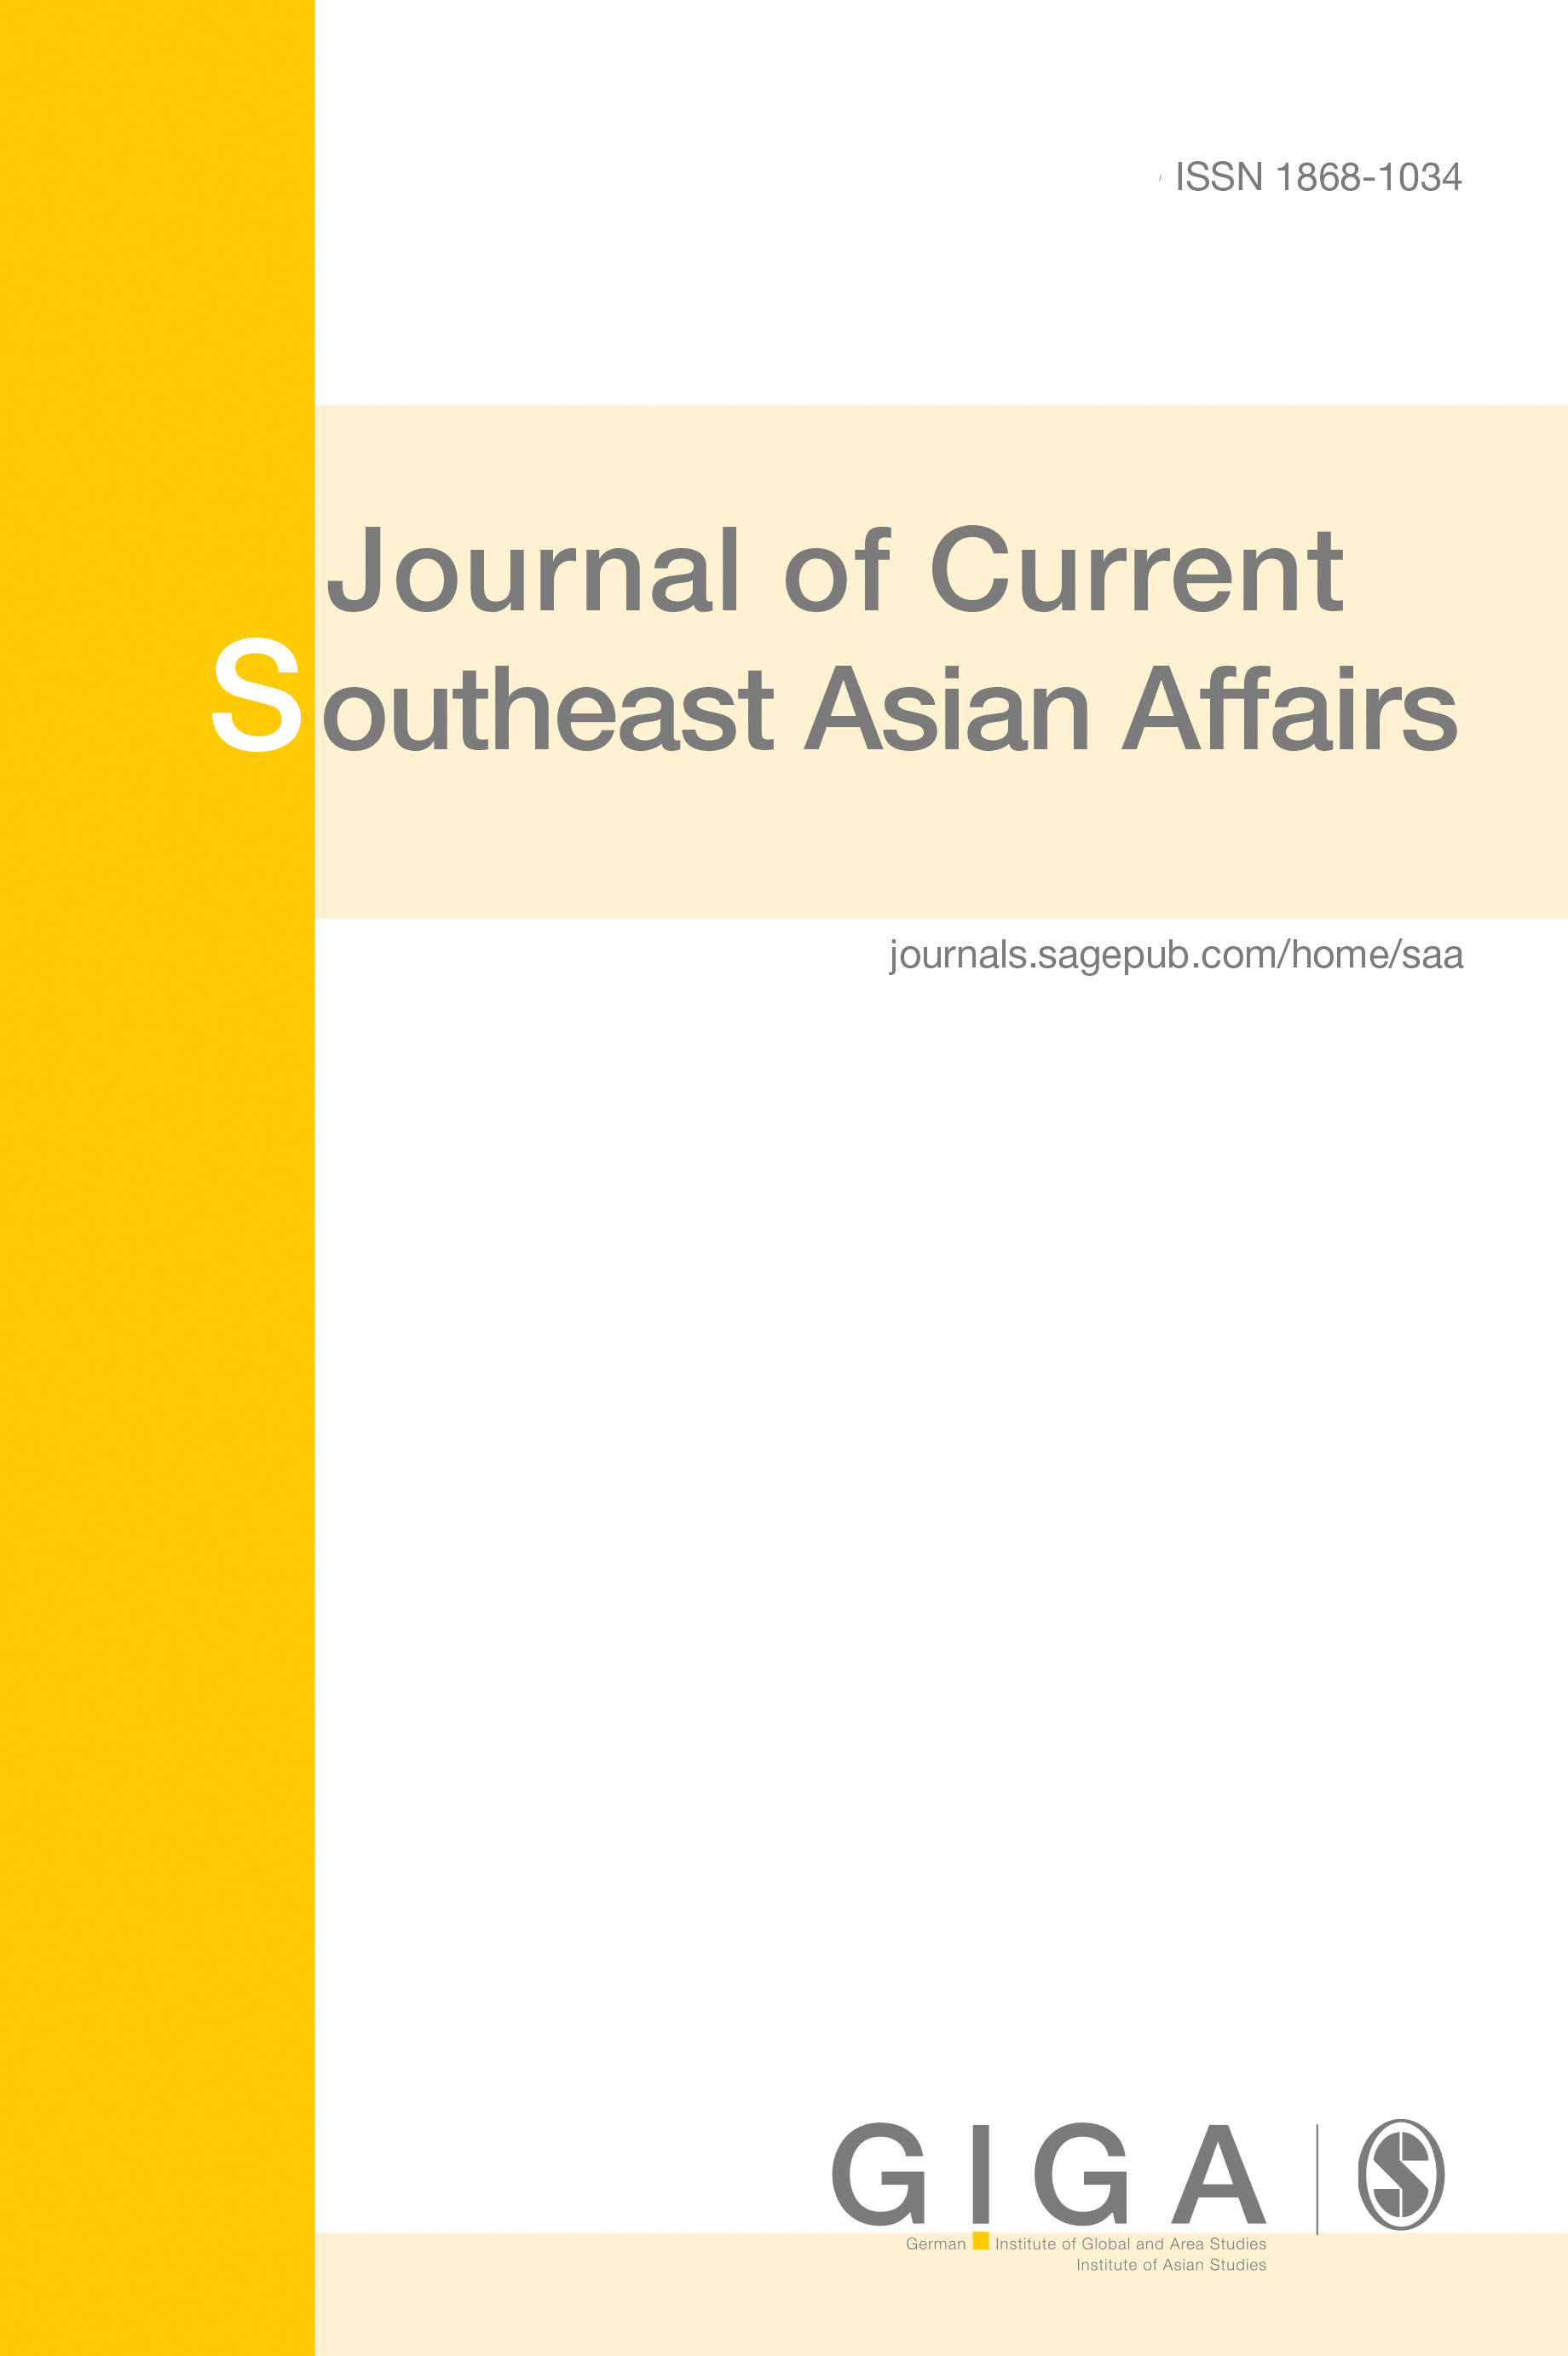 Journal of Current Southeast Asian Affairs